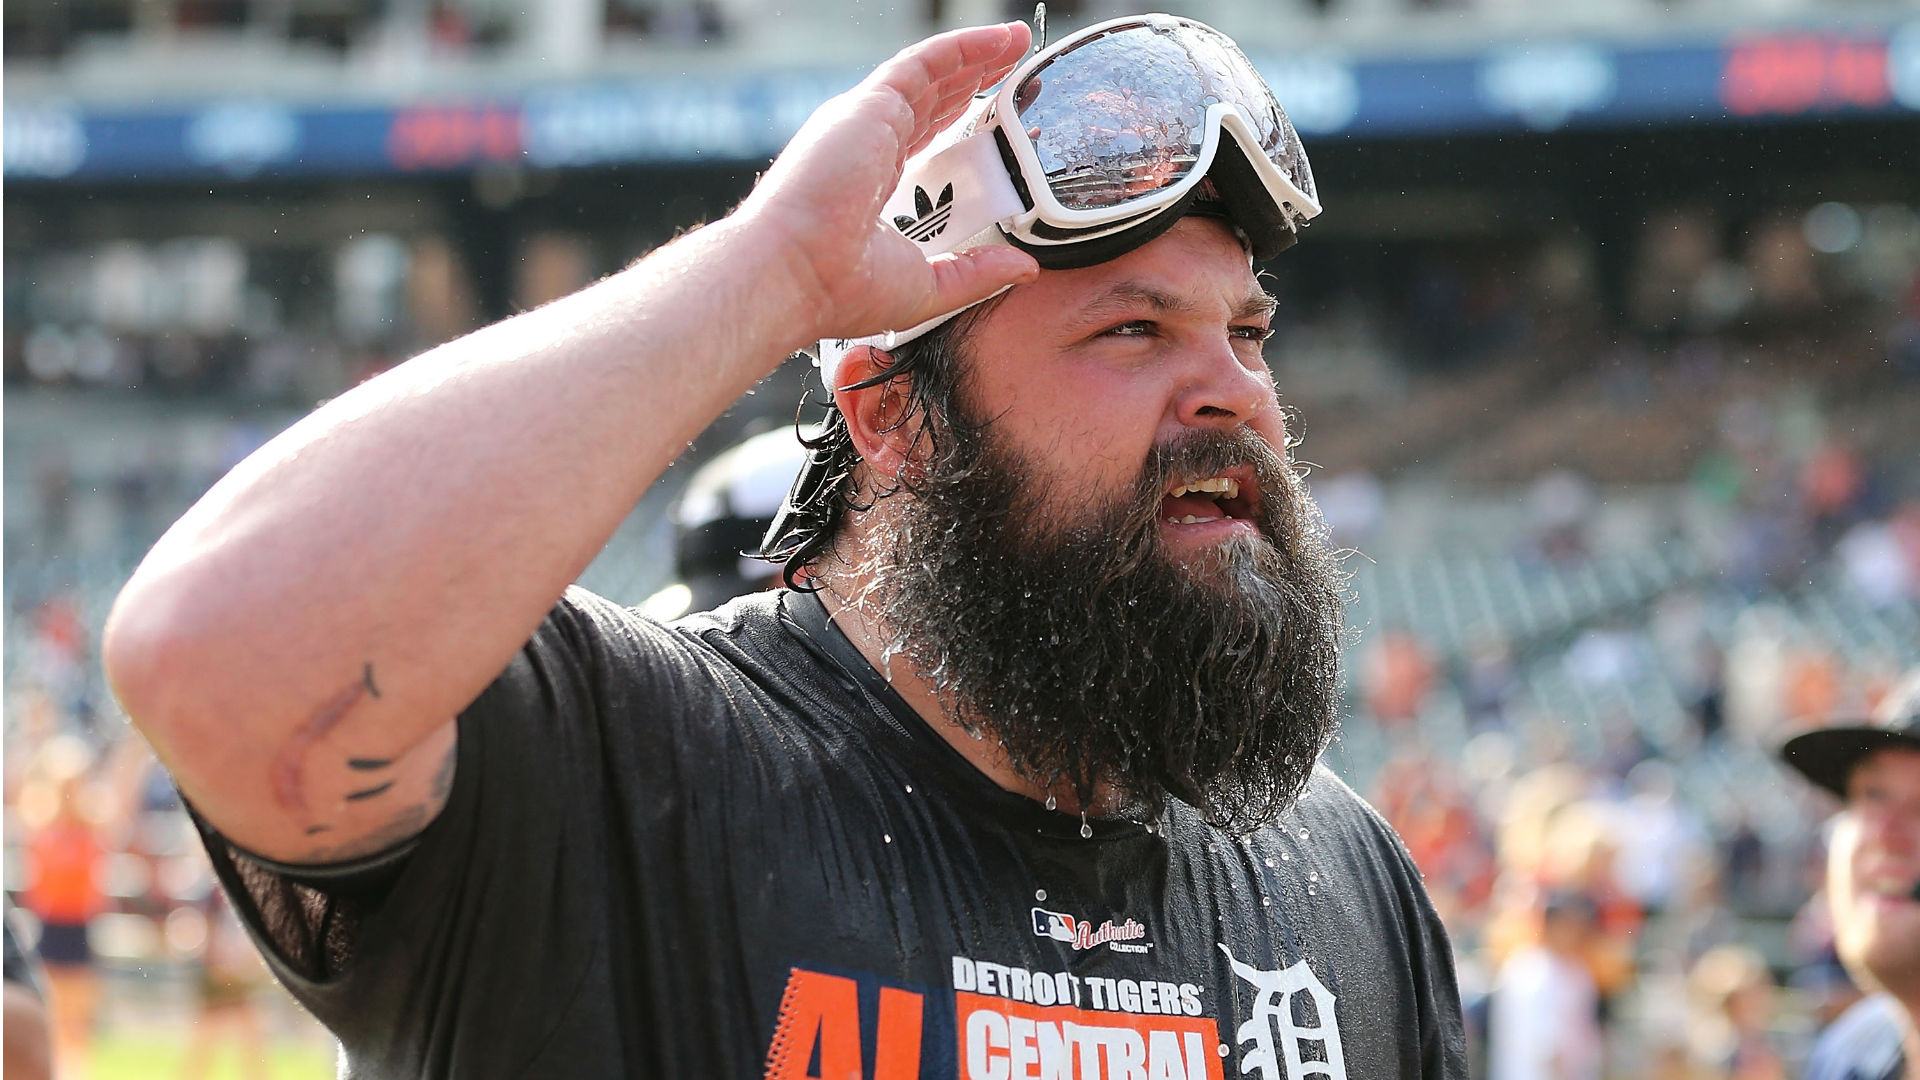 Tigers designate Joba Chamberlain for assignment, activate Alex Avila from DL